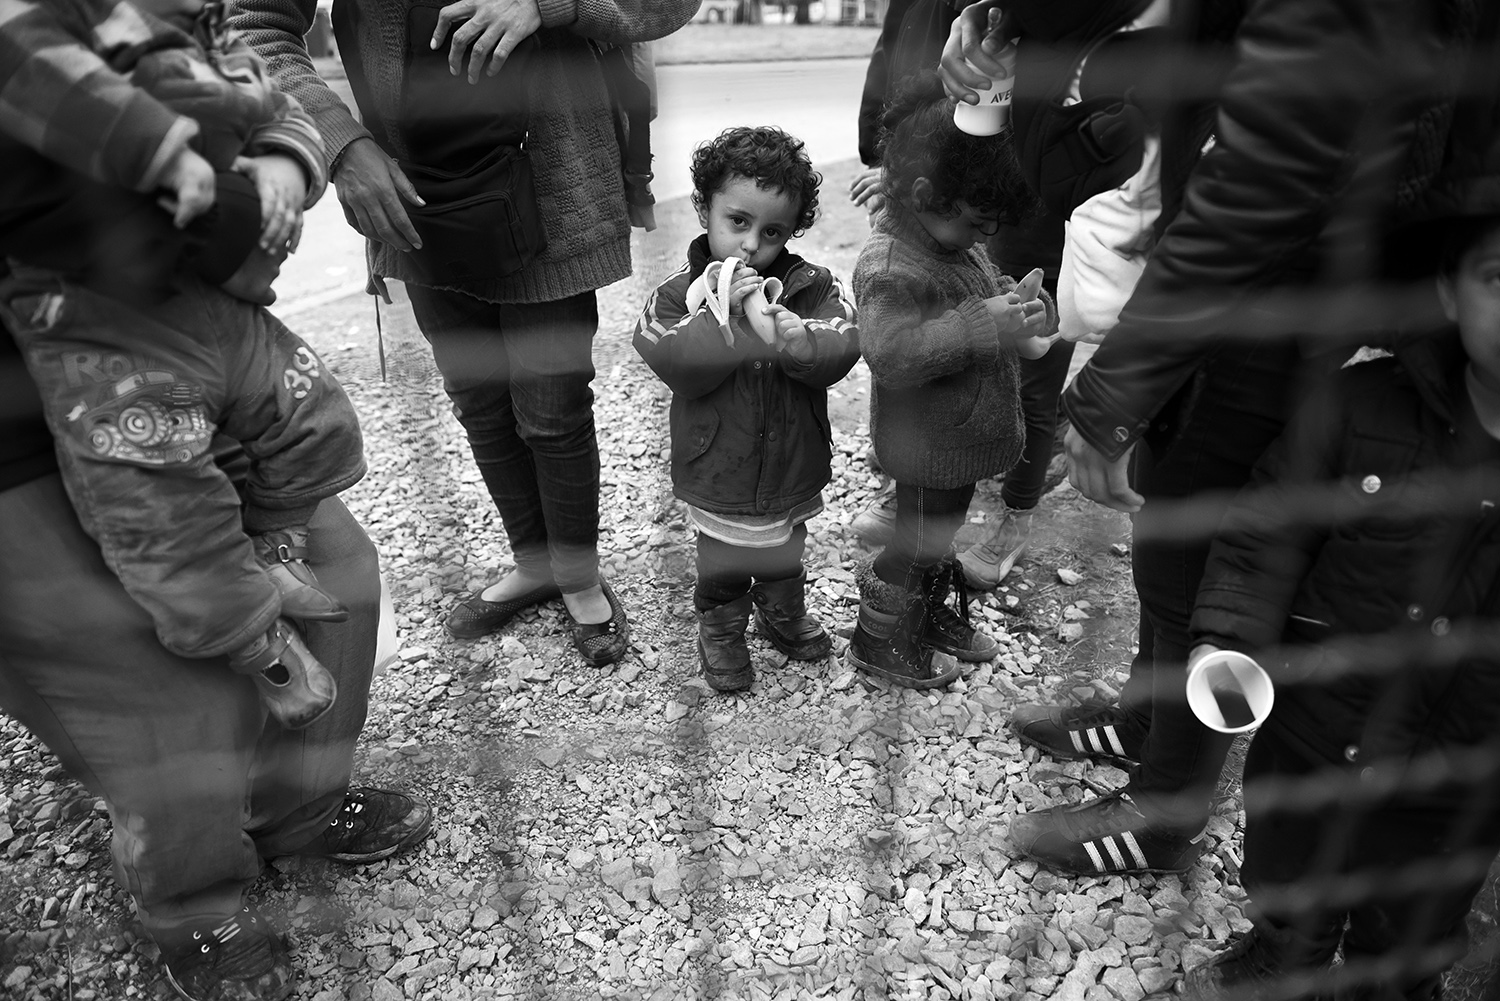 A child is standing in line with family before registering at the reception center in Opatovac, near the town of Tovarnik where Croatian police registered refugees from the Middle East who have come from Serbia. After registering, the refugees continue their way to Slovenia, most refugees want to get to Germany.